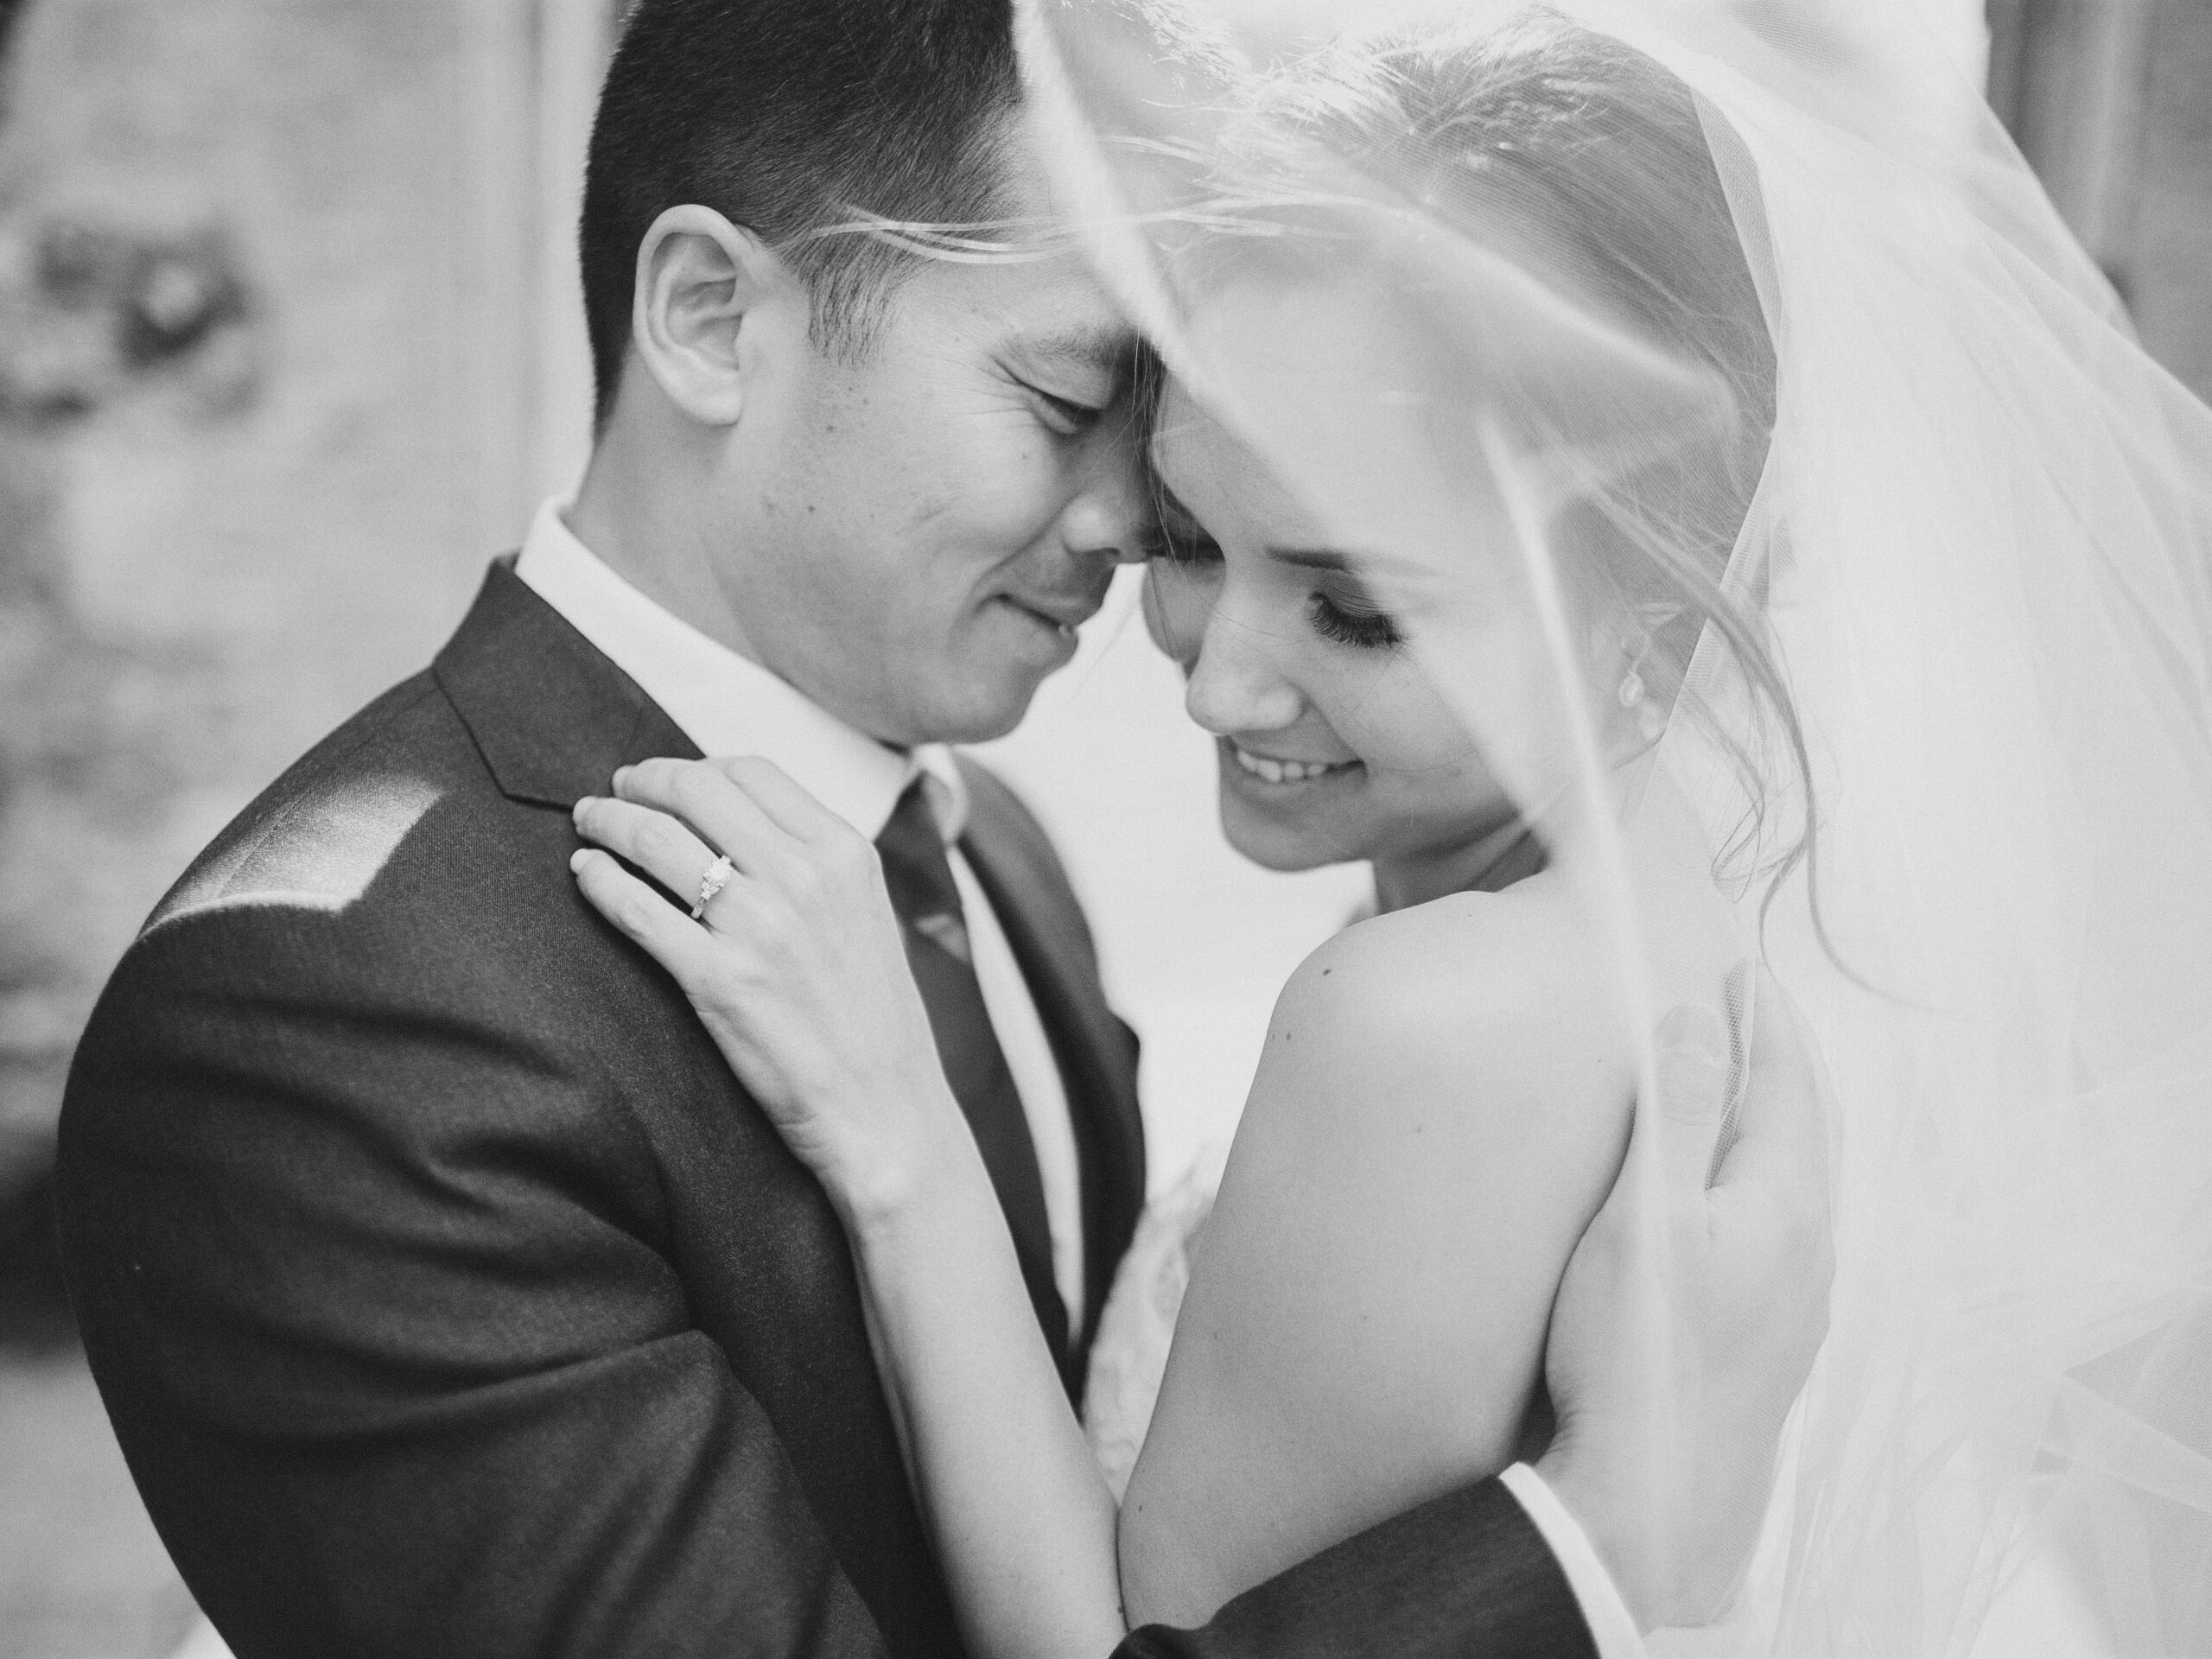 Wedding Photography Styles Explained: Wedding Photography Styles You Need To Know